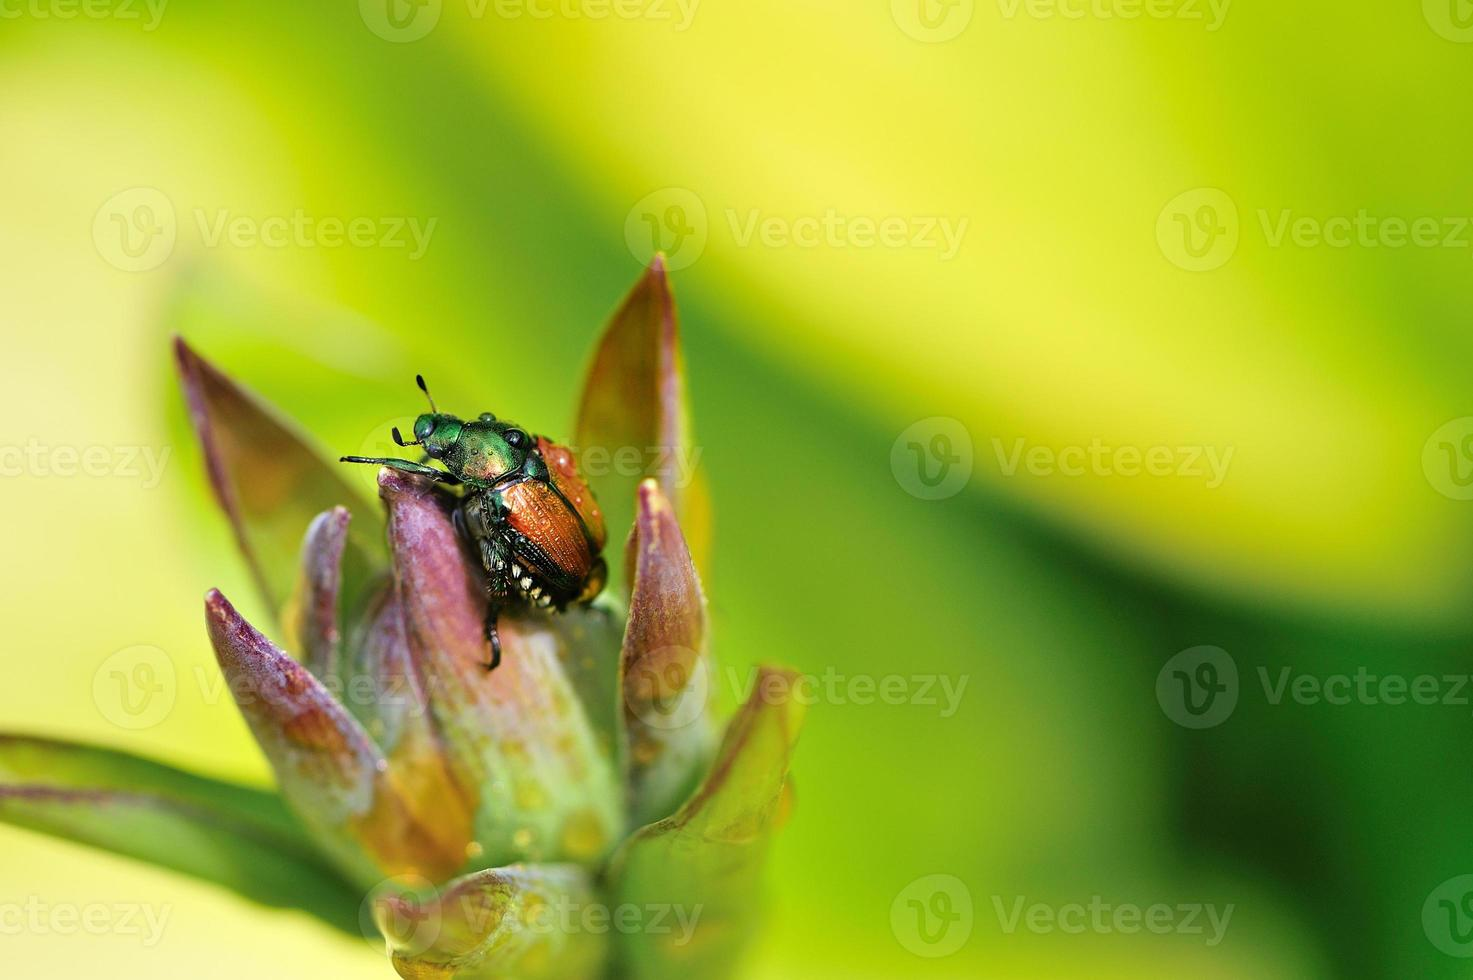 Hosta flower and Beetle photo